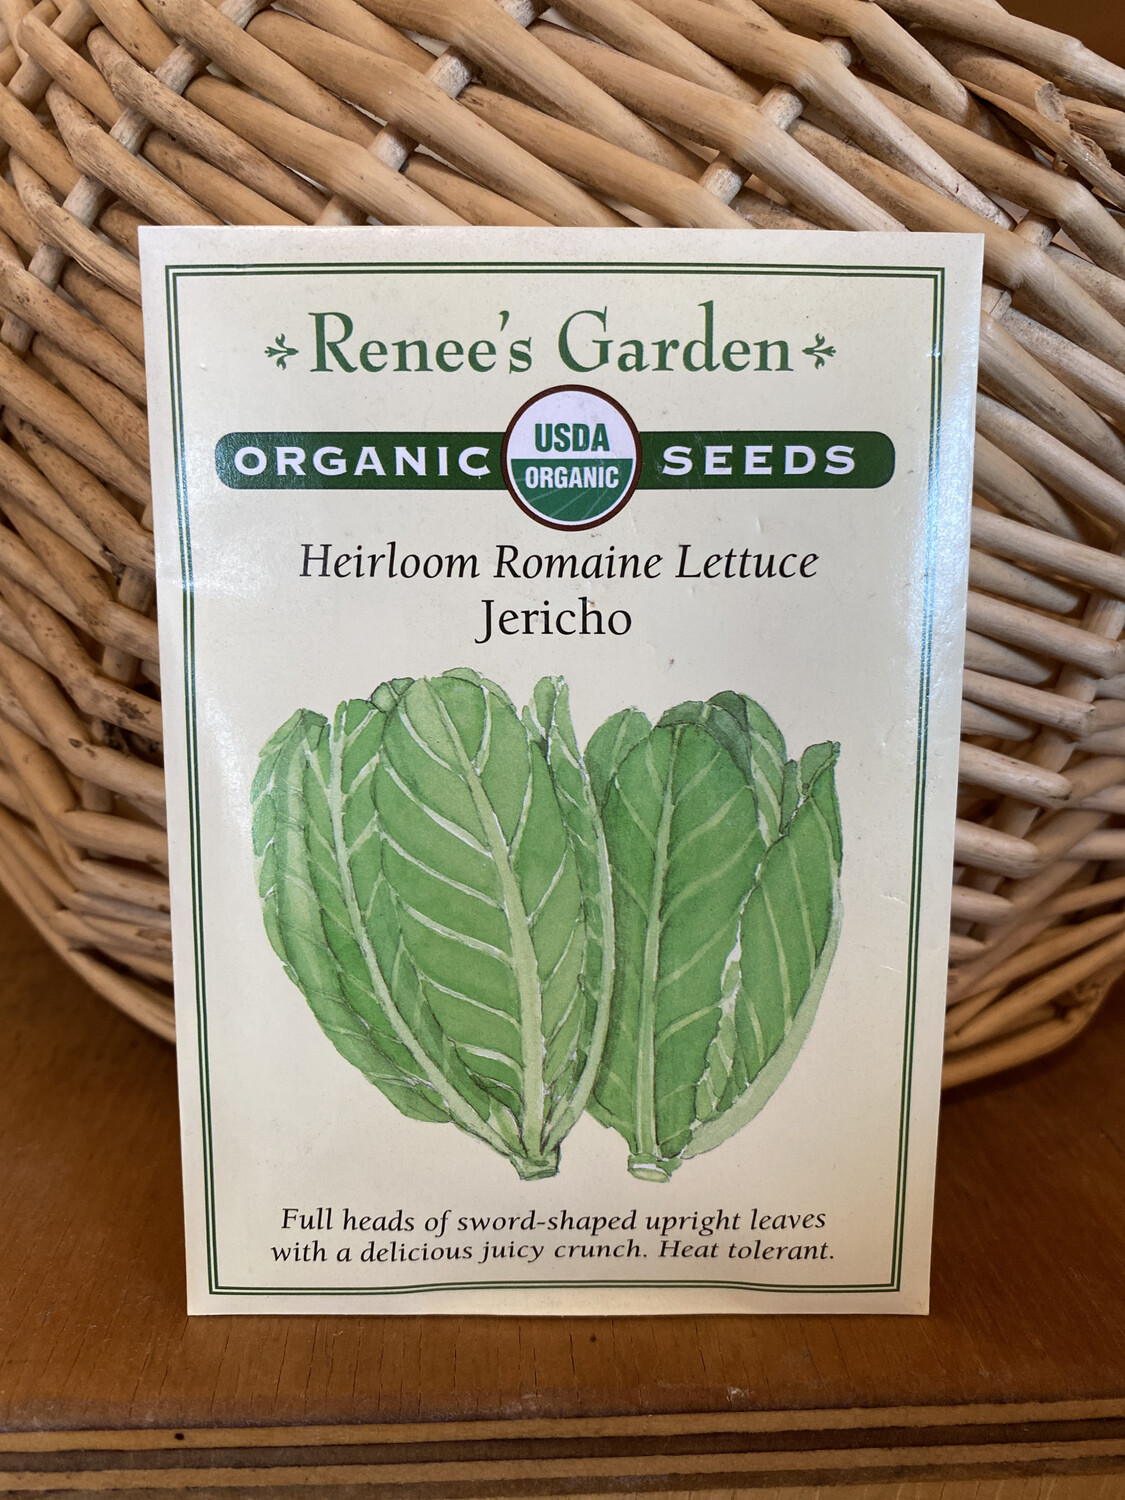 Heirloom Romaine Lettuce Jericho   Renee's Garden Seed Pack   Past Year's Seeds   Reduced Price